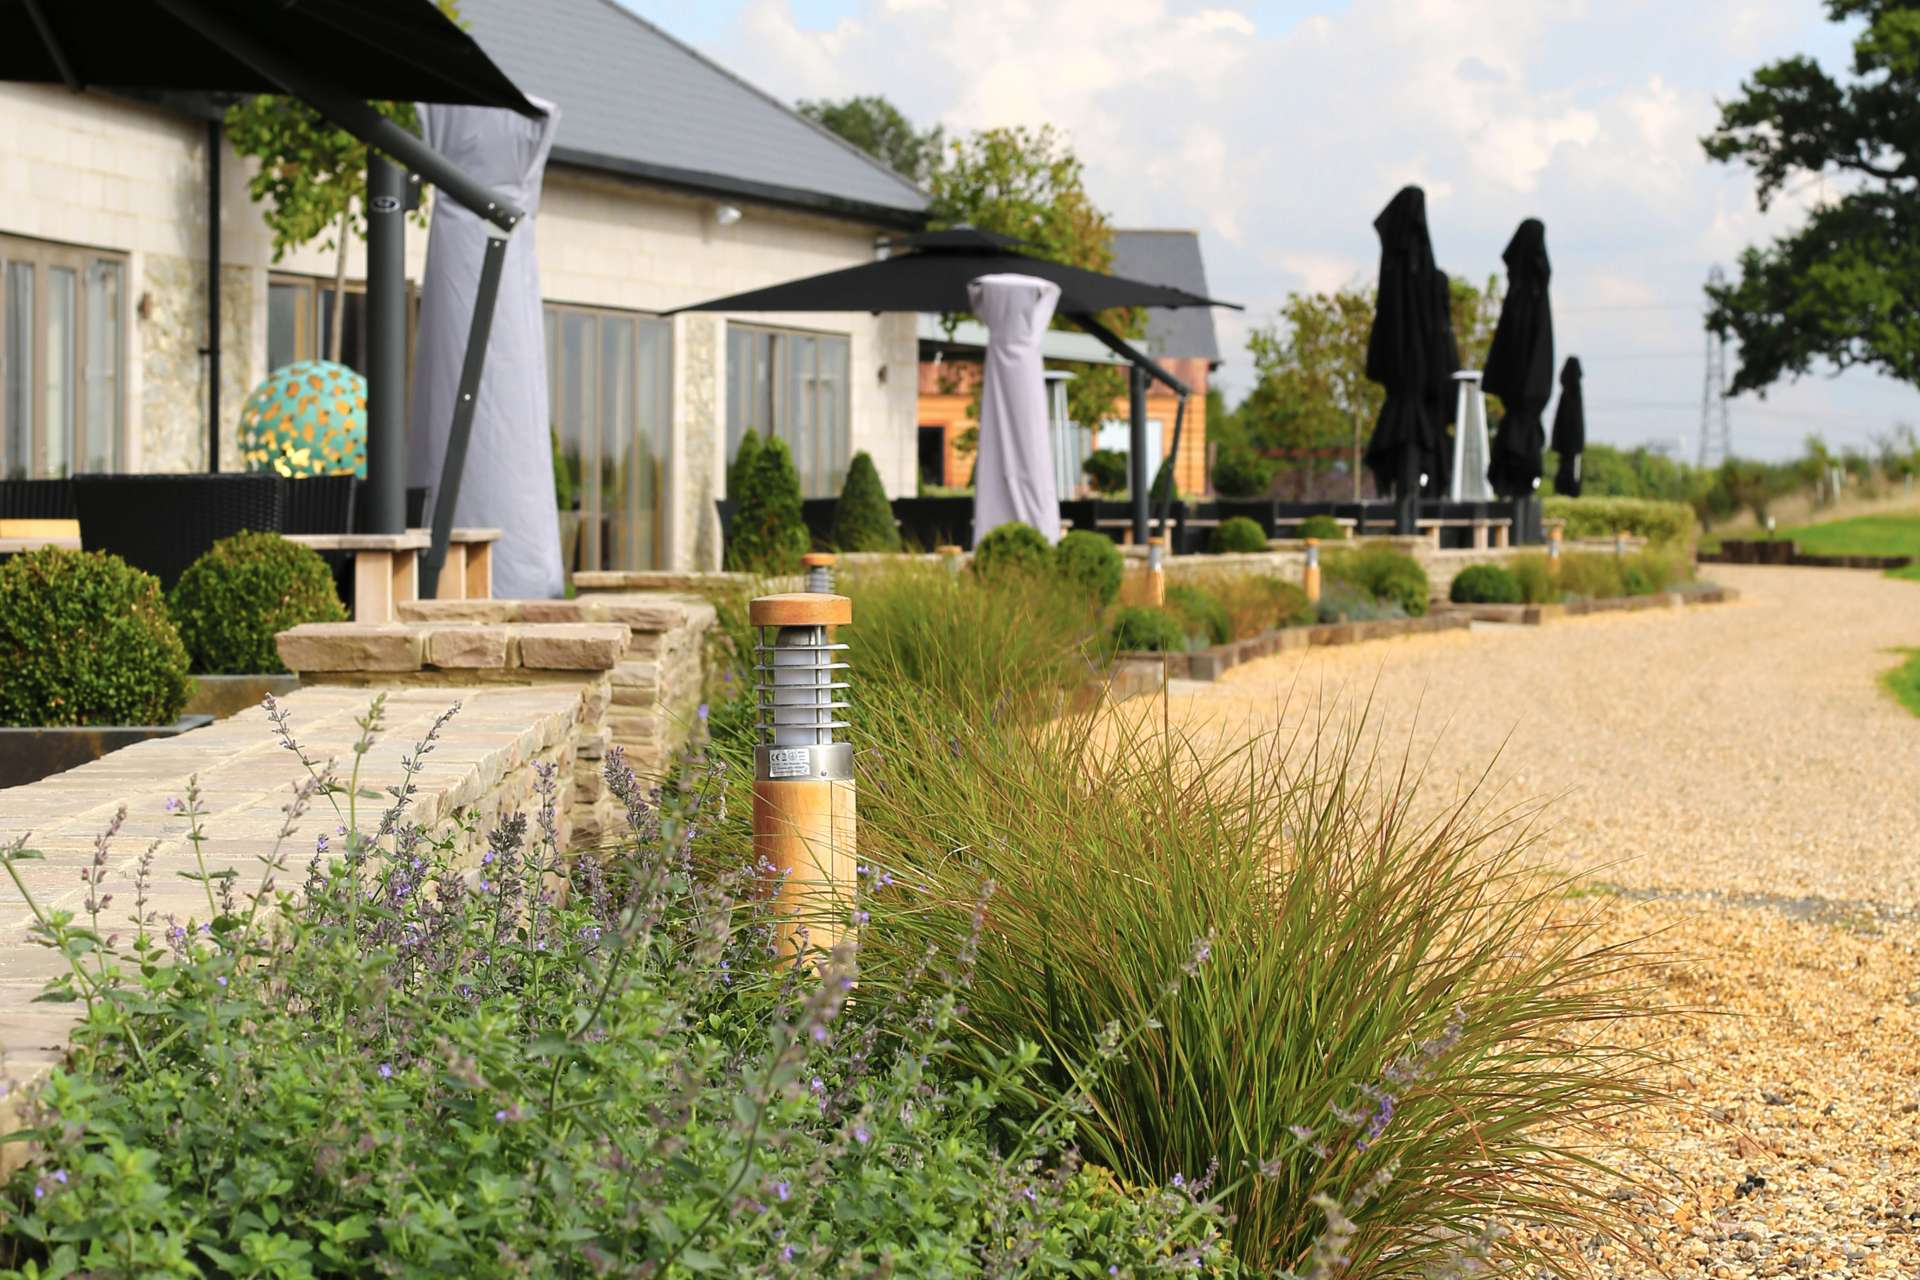 Centurion golf club hertfordshire aralia garden design for Garden design hertfordshire